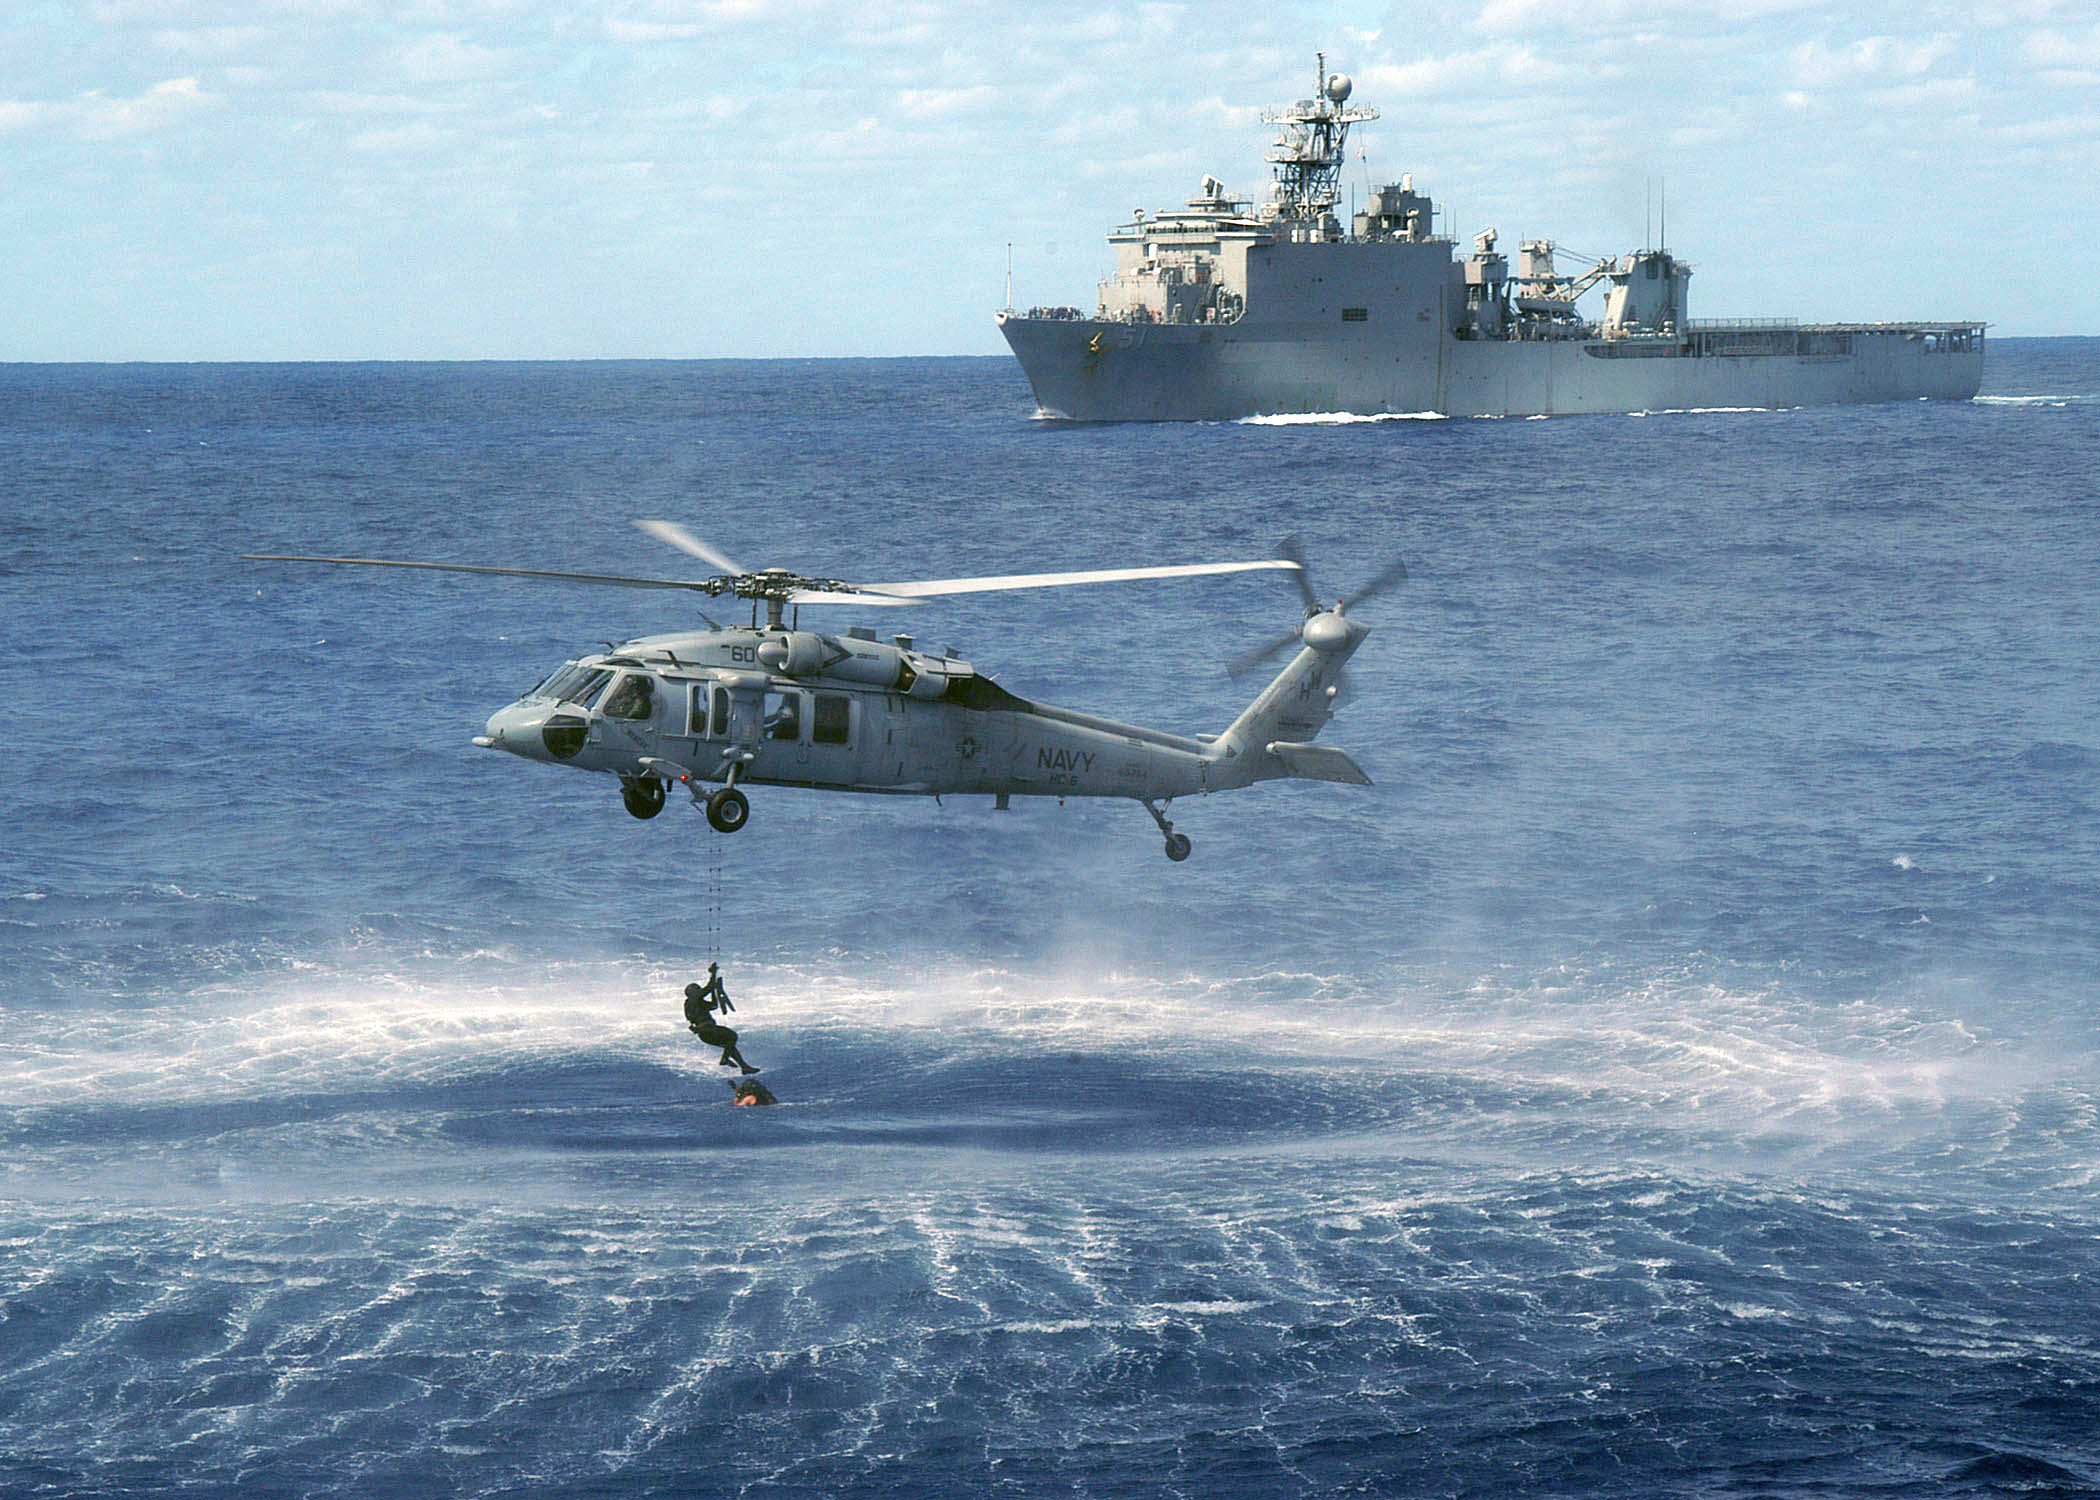 mh60s helicopter with File Us Navy 040613 N 2651j 007 An Mh 60s Knight Hawk Assigned To Helicopter  Bat Support Squadron Six  Hc 6   Embarked Aboard The  Hibious Assault Ship Uss Saipan  Lha 2 on 2 as well Sh 60f israel besides File US Navy 040613 N 2651J 007 An MH 60S Knight Hawk assigned to Helicopter  bat Support Squadron Six  HC 6   embarked aboard the  hibious assault ship USS Saipan  LHA 2 moreover Search besides Timeline.